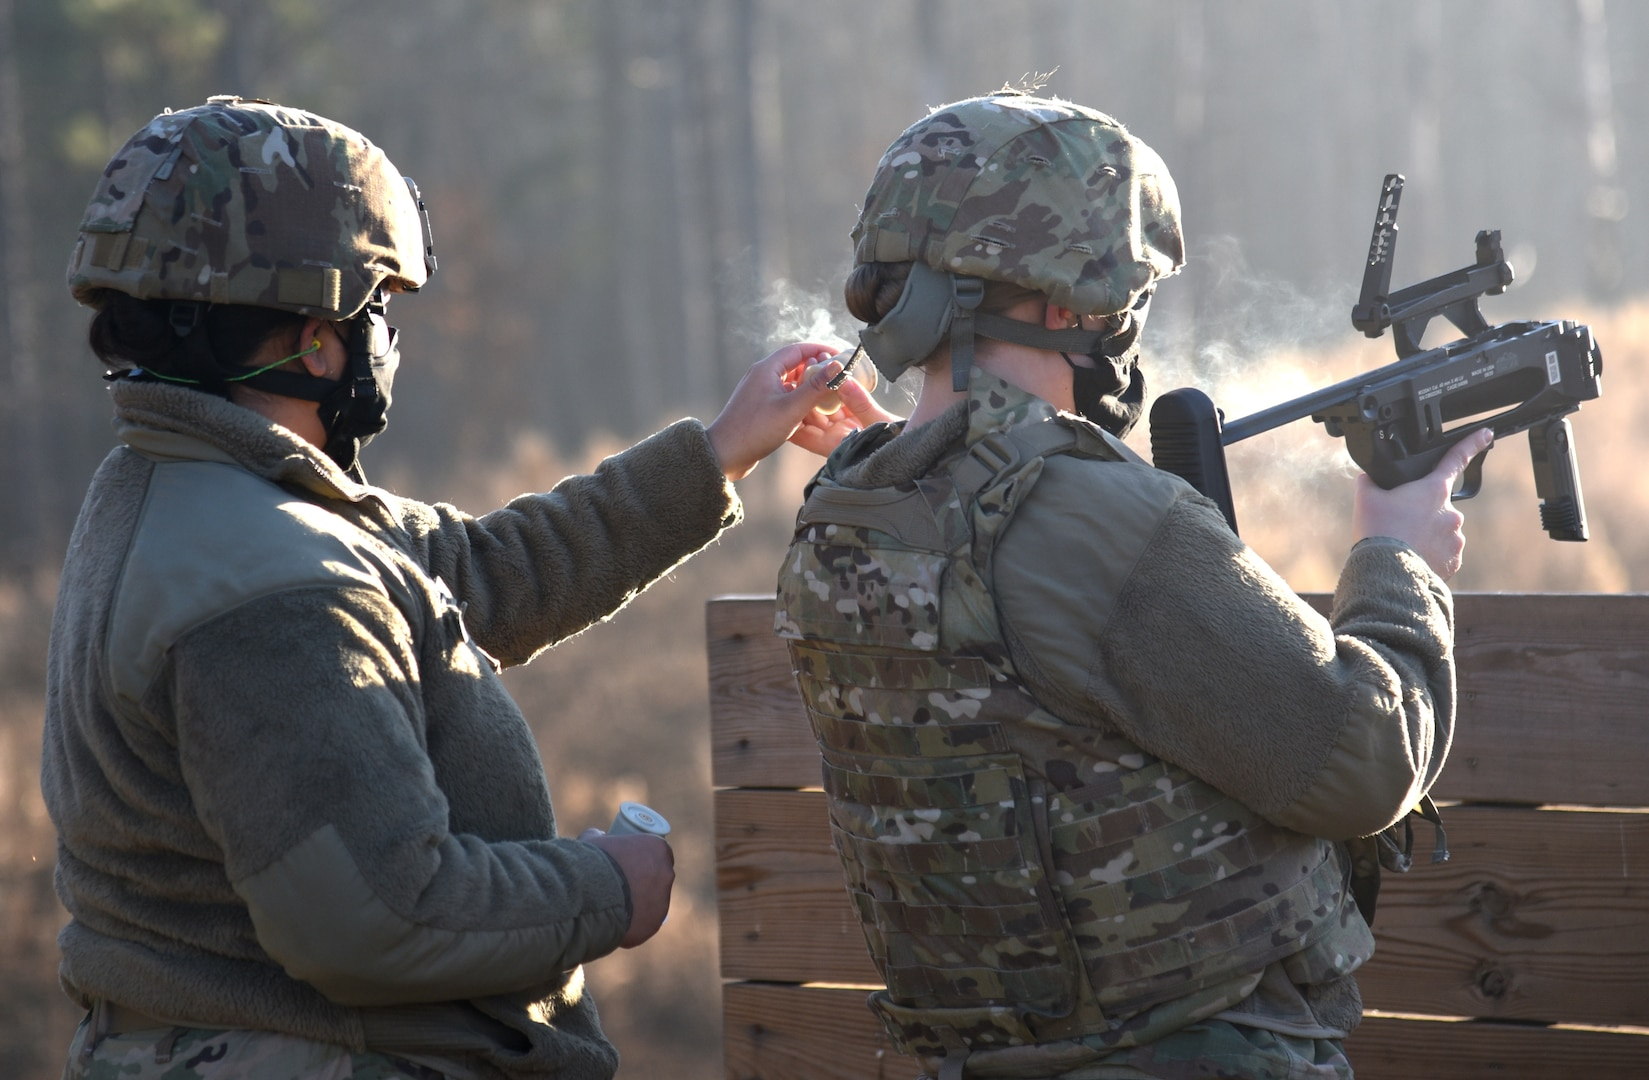 Virginia National Guard Soldiers assigned to the Virginia Beach-based 329th Regional Support Group conduct a familiarization live fire with the M320A1 grenade launcher Dec. 11, 2020, at Fort Pickett, Virginia.